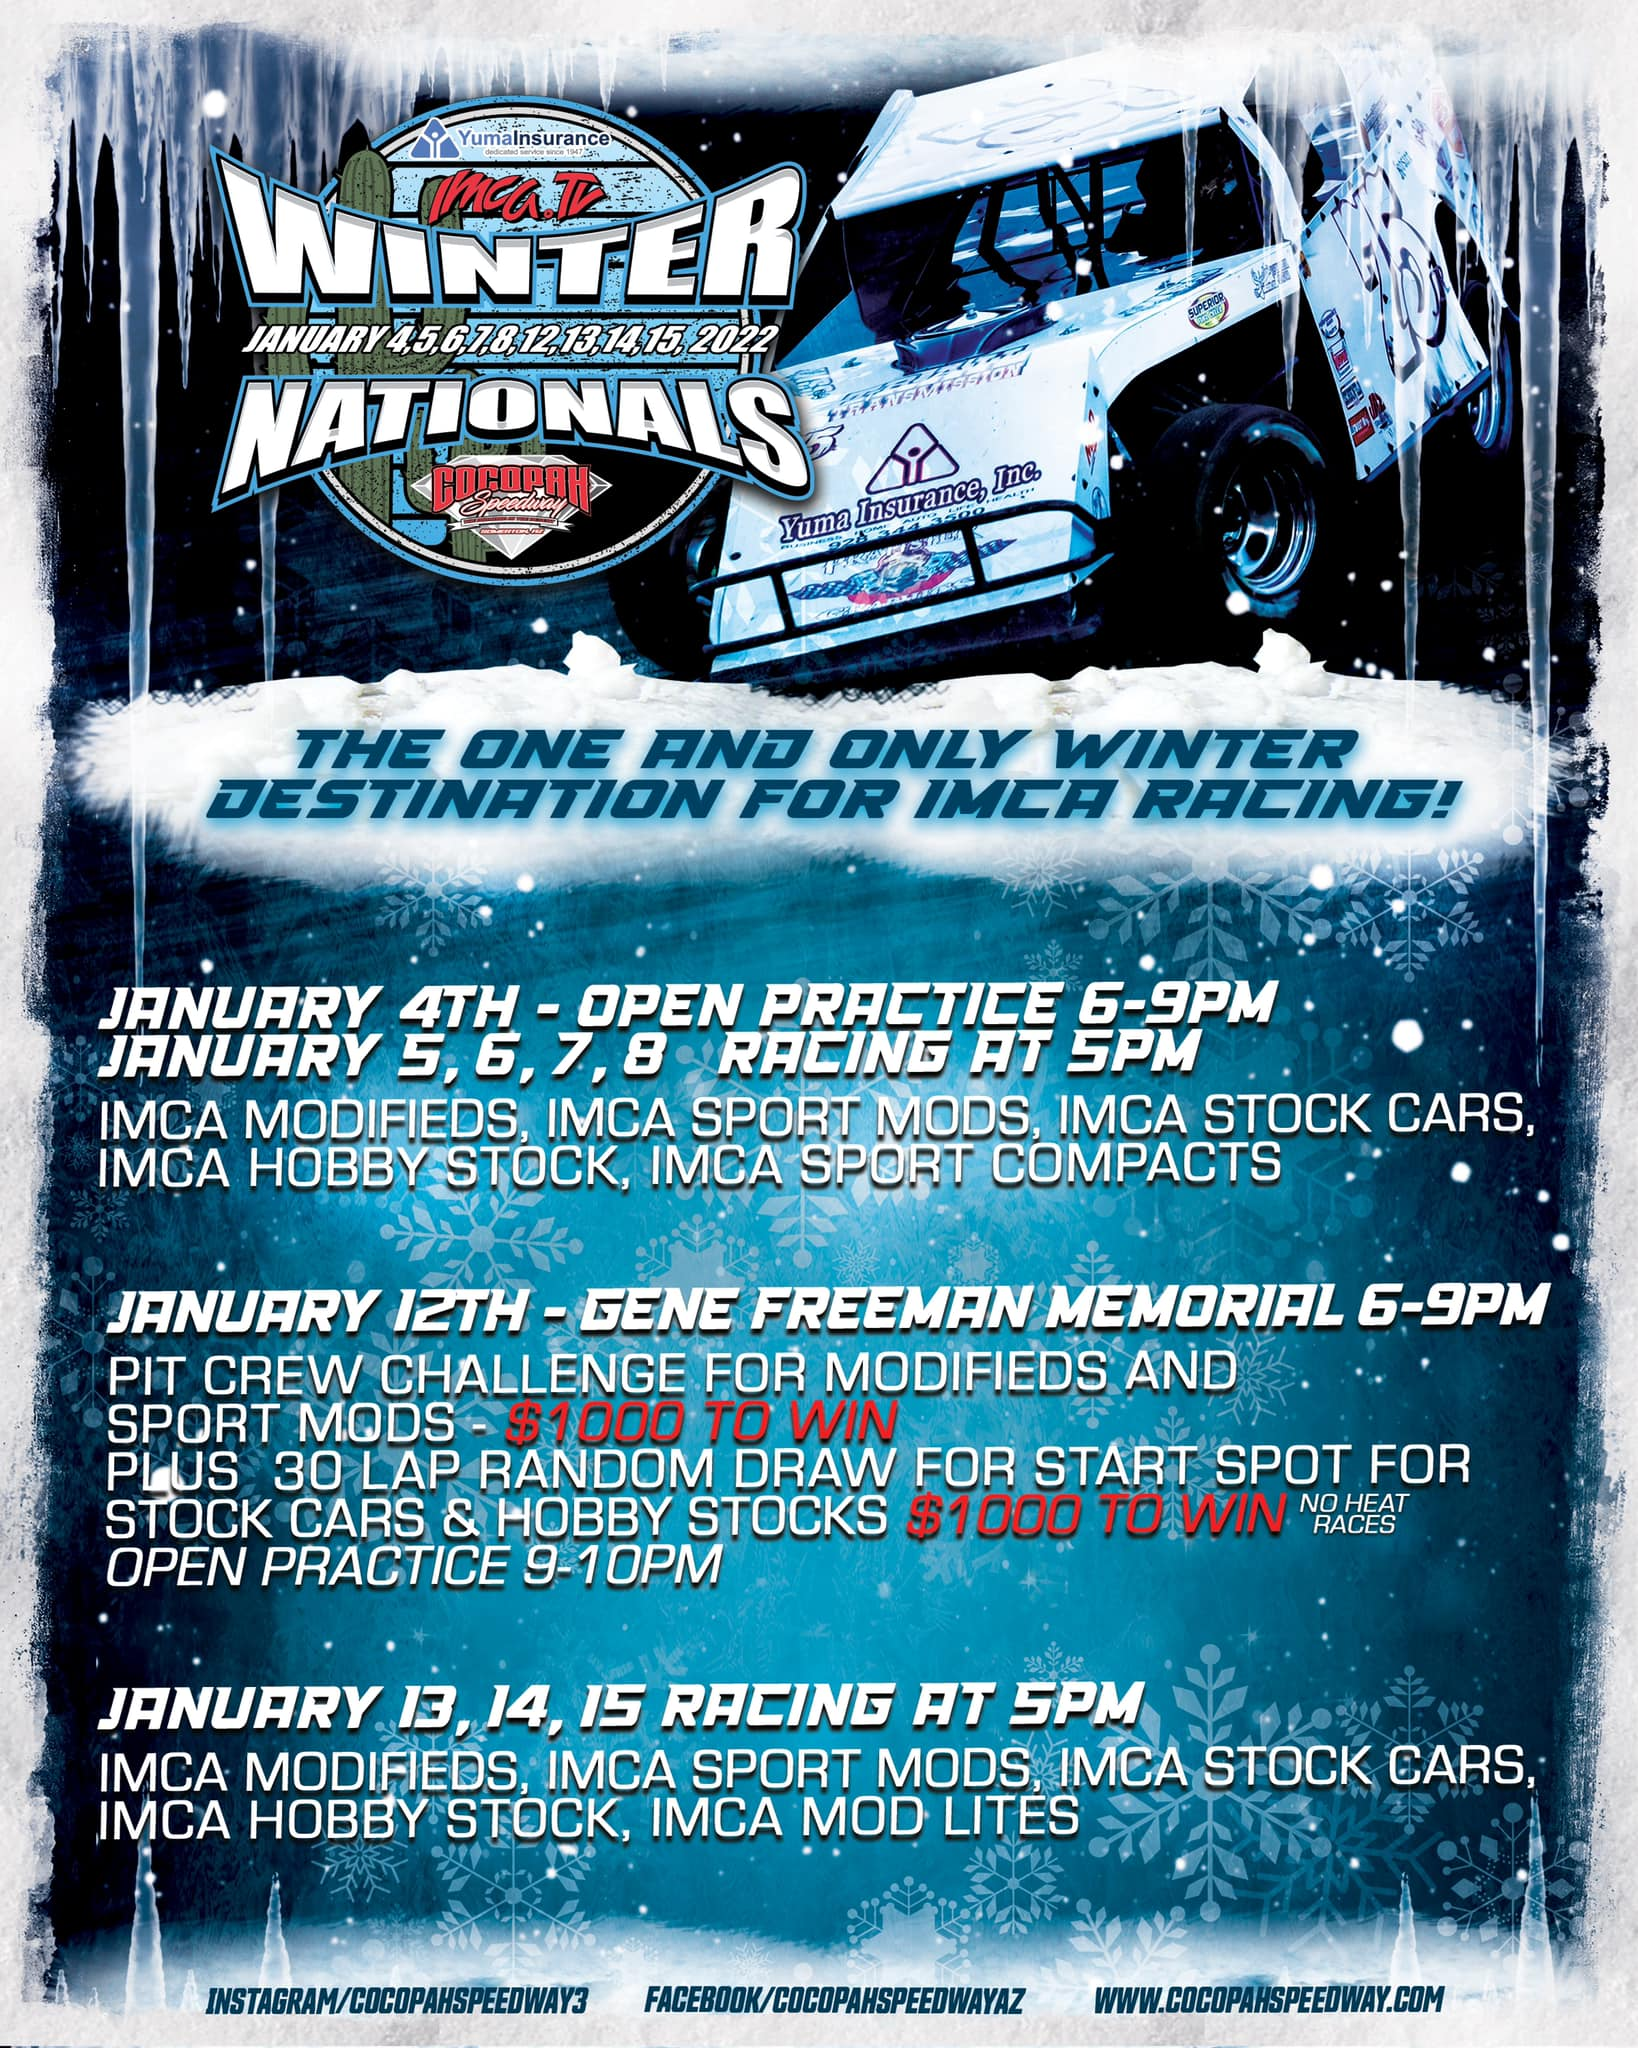 Attention Racers IMCA.TV Winter Nationals presented by Yuma Insurance pre-registration starts October 1st